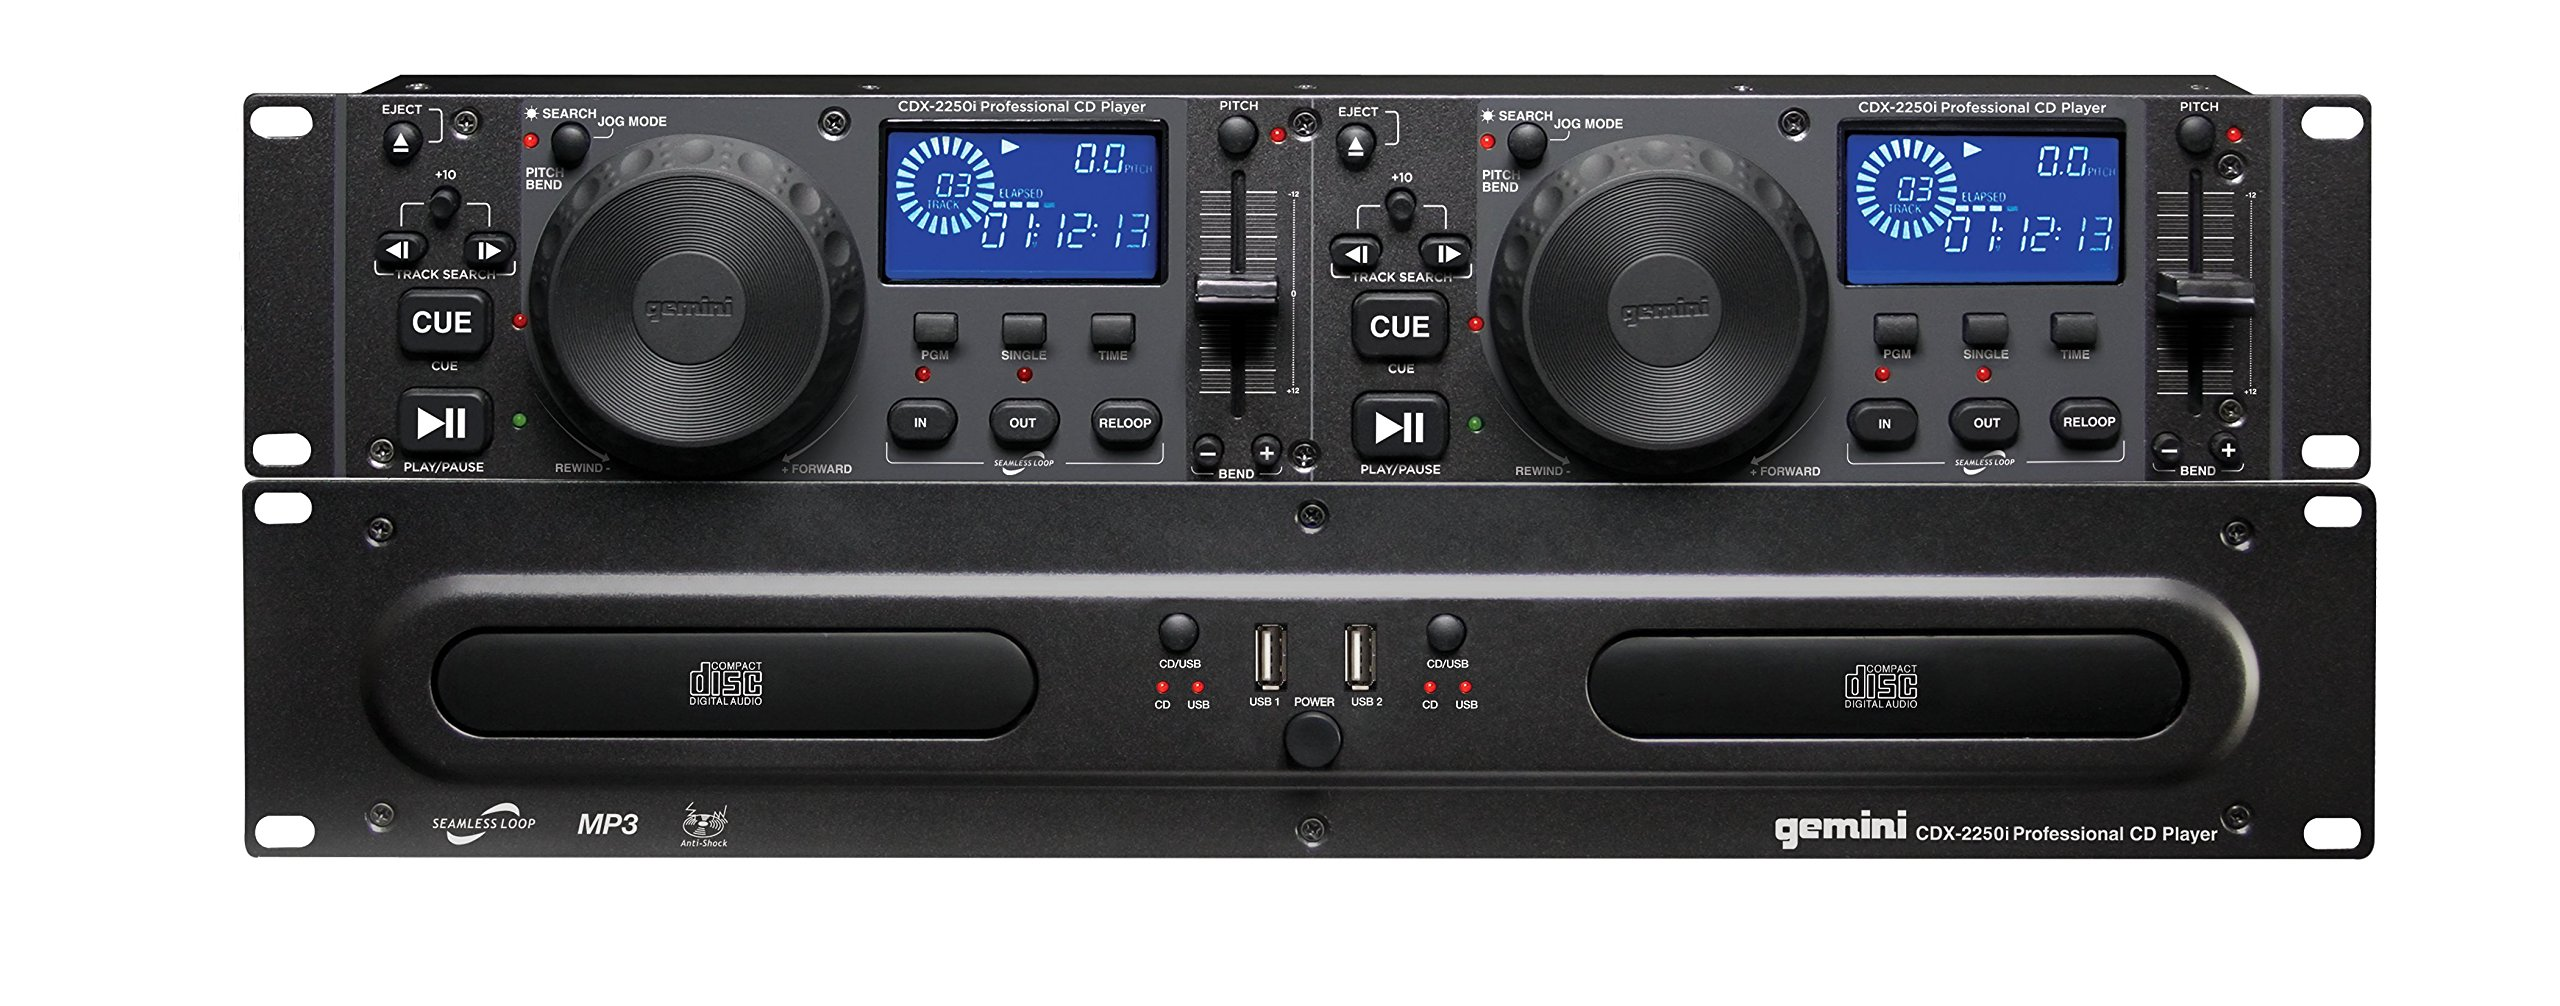 Gemini CDX Series CDX-2250i Professional Audio DJ Equipment Multimedia CD Media Player with Audio CD, CD-R, and MP3 Compatible with USB Input